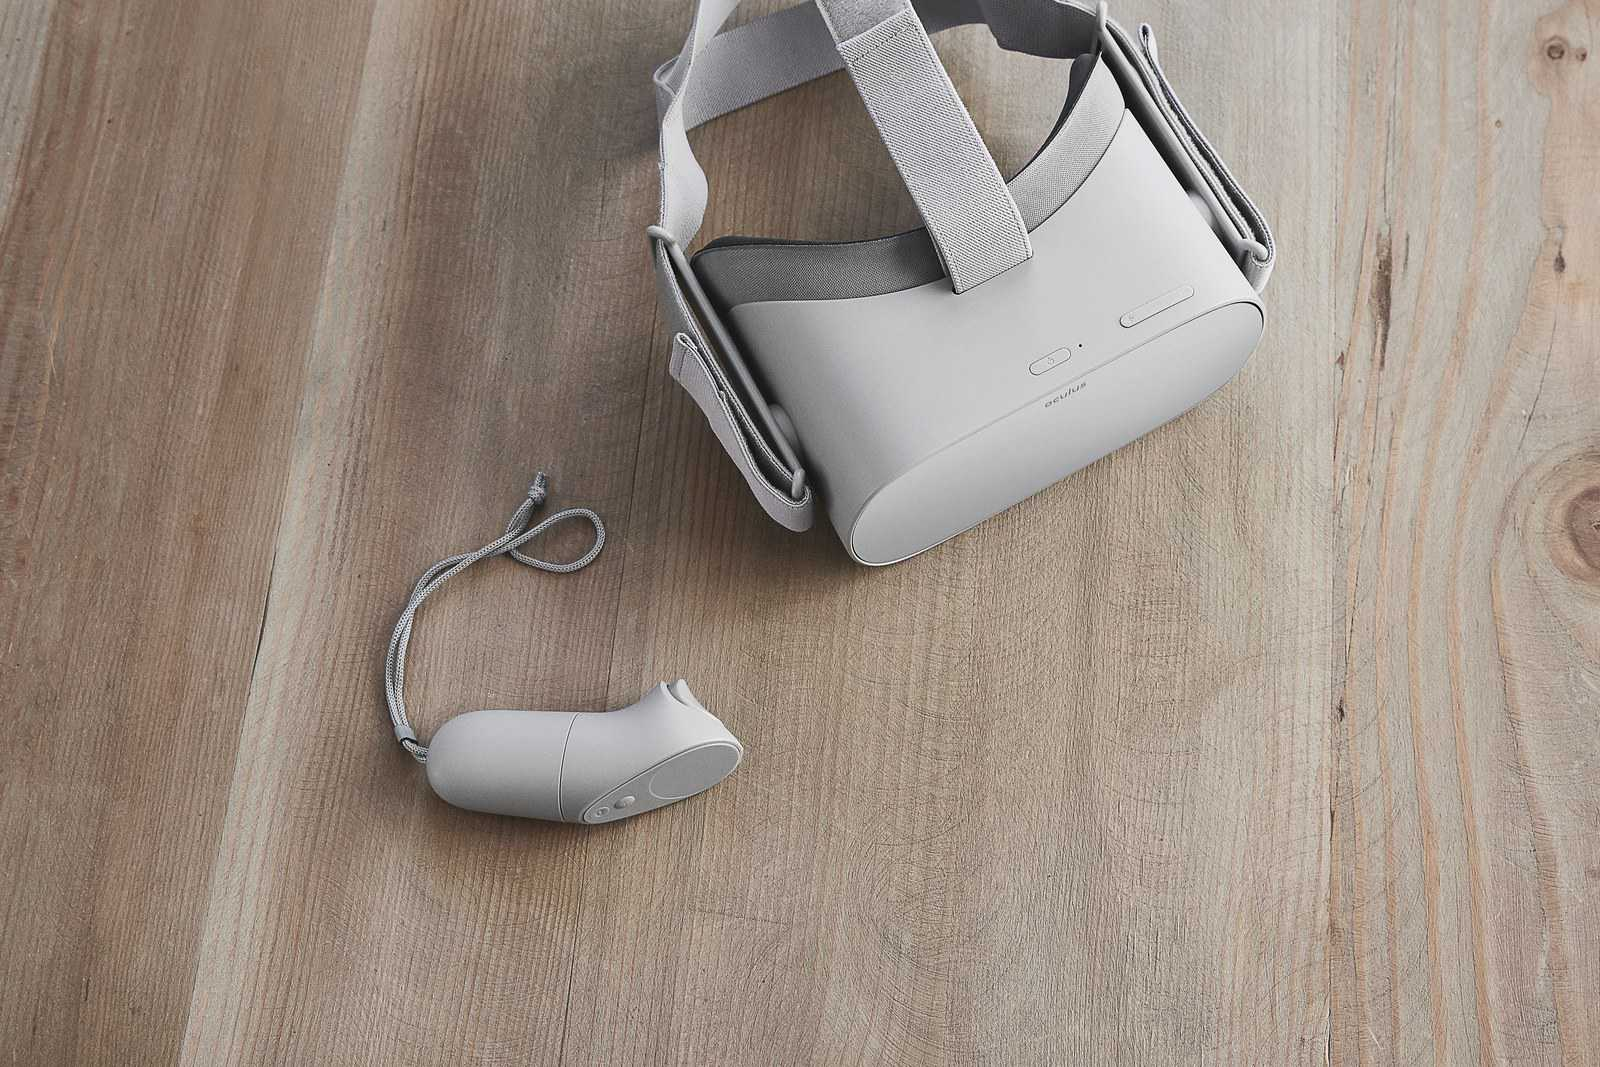 Oculus Go Review Is It Any Good For Watching Vr Porn-7159